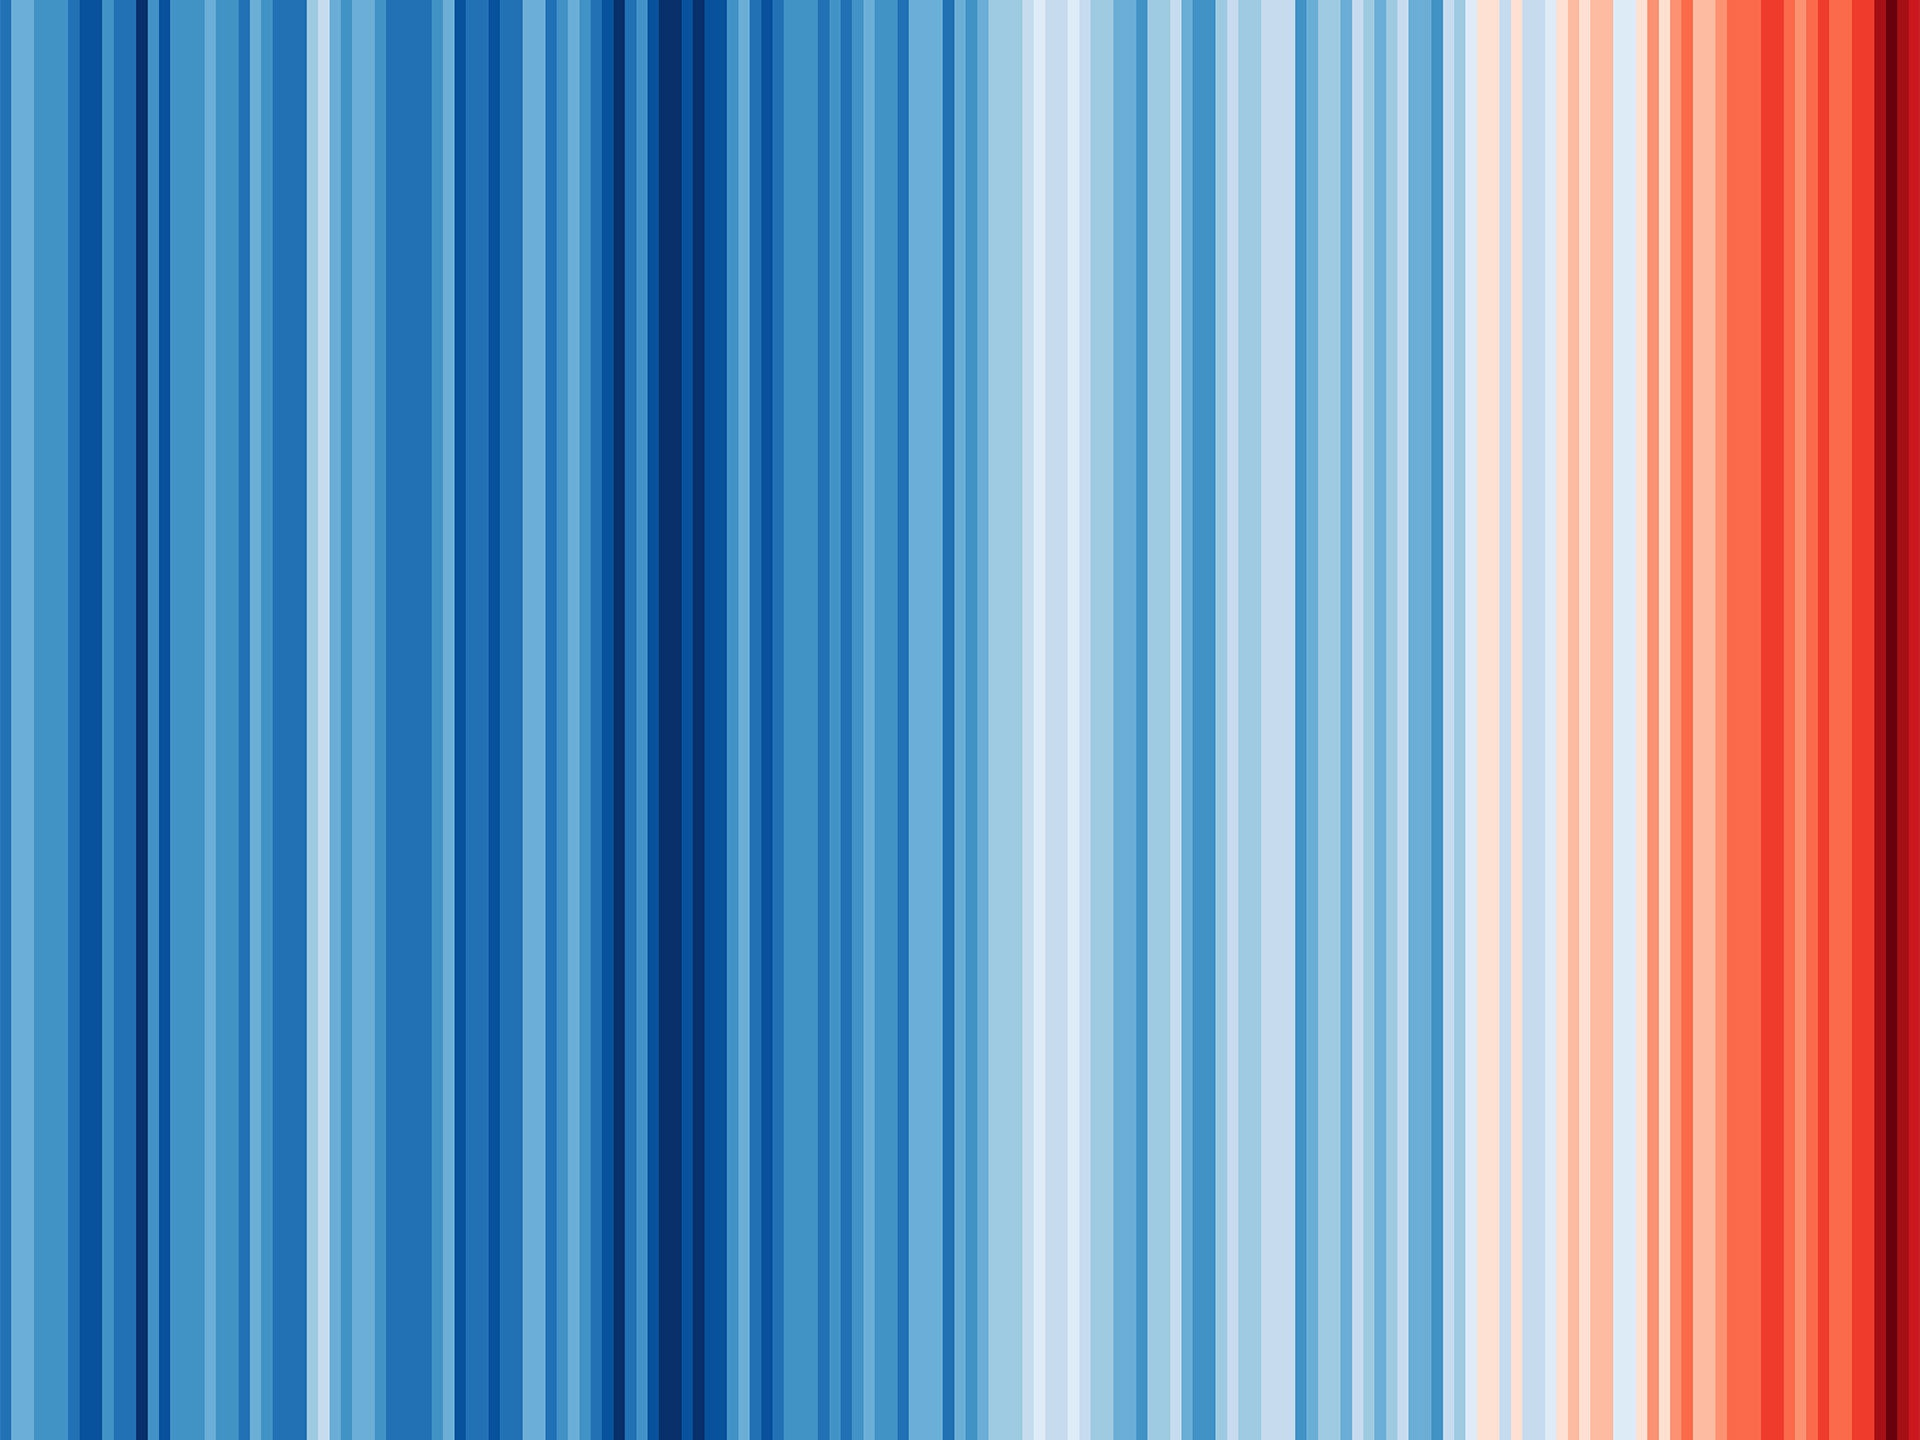 Climate Stripes by Ed Hawkins